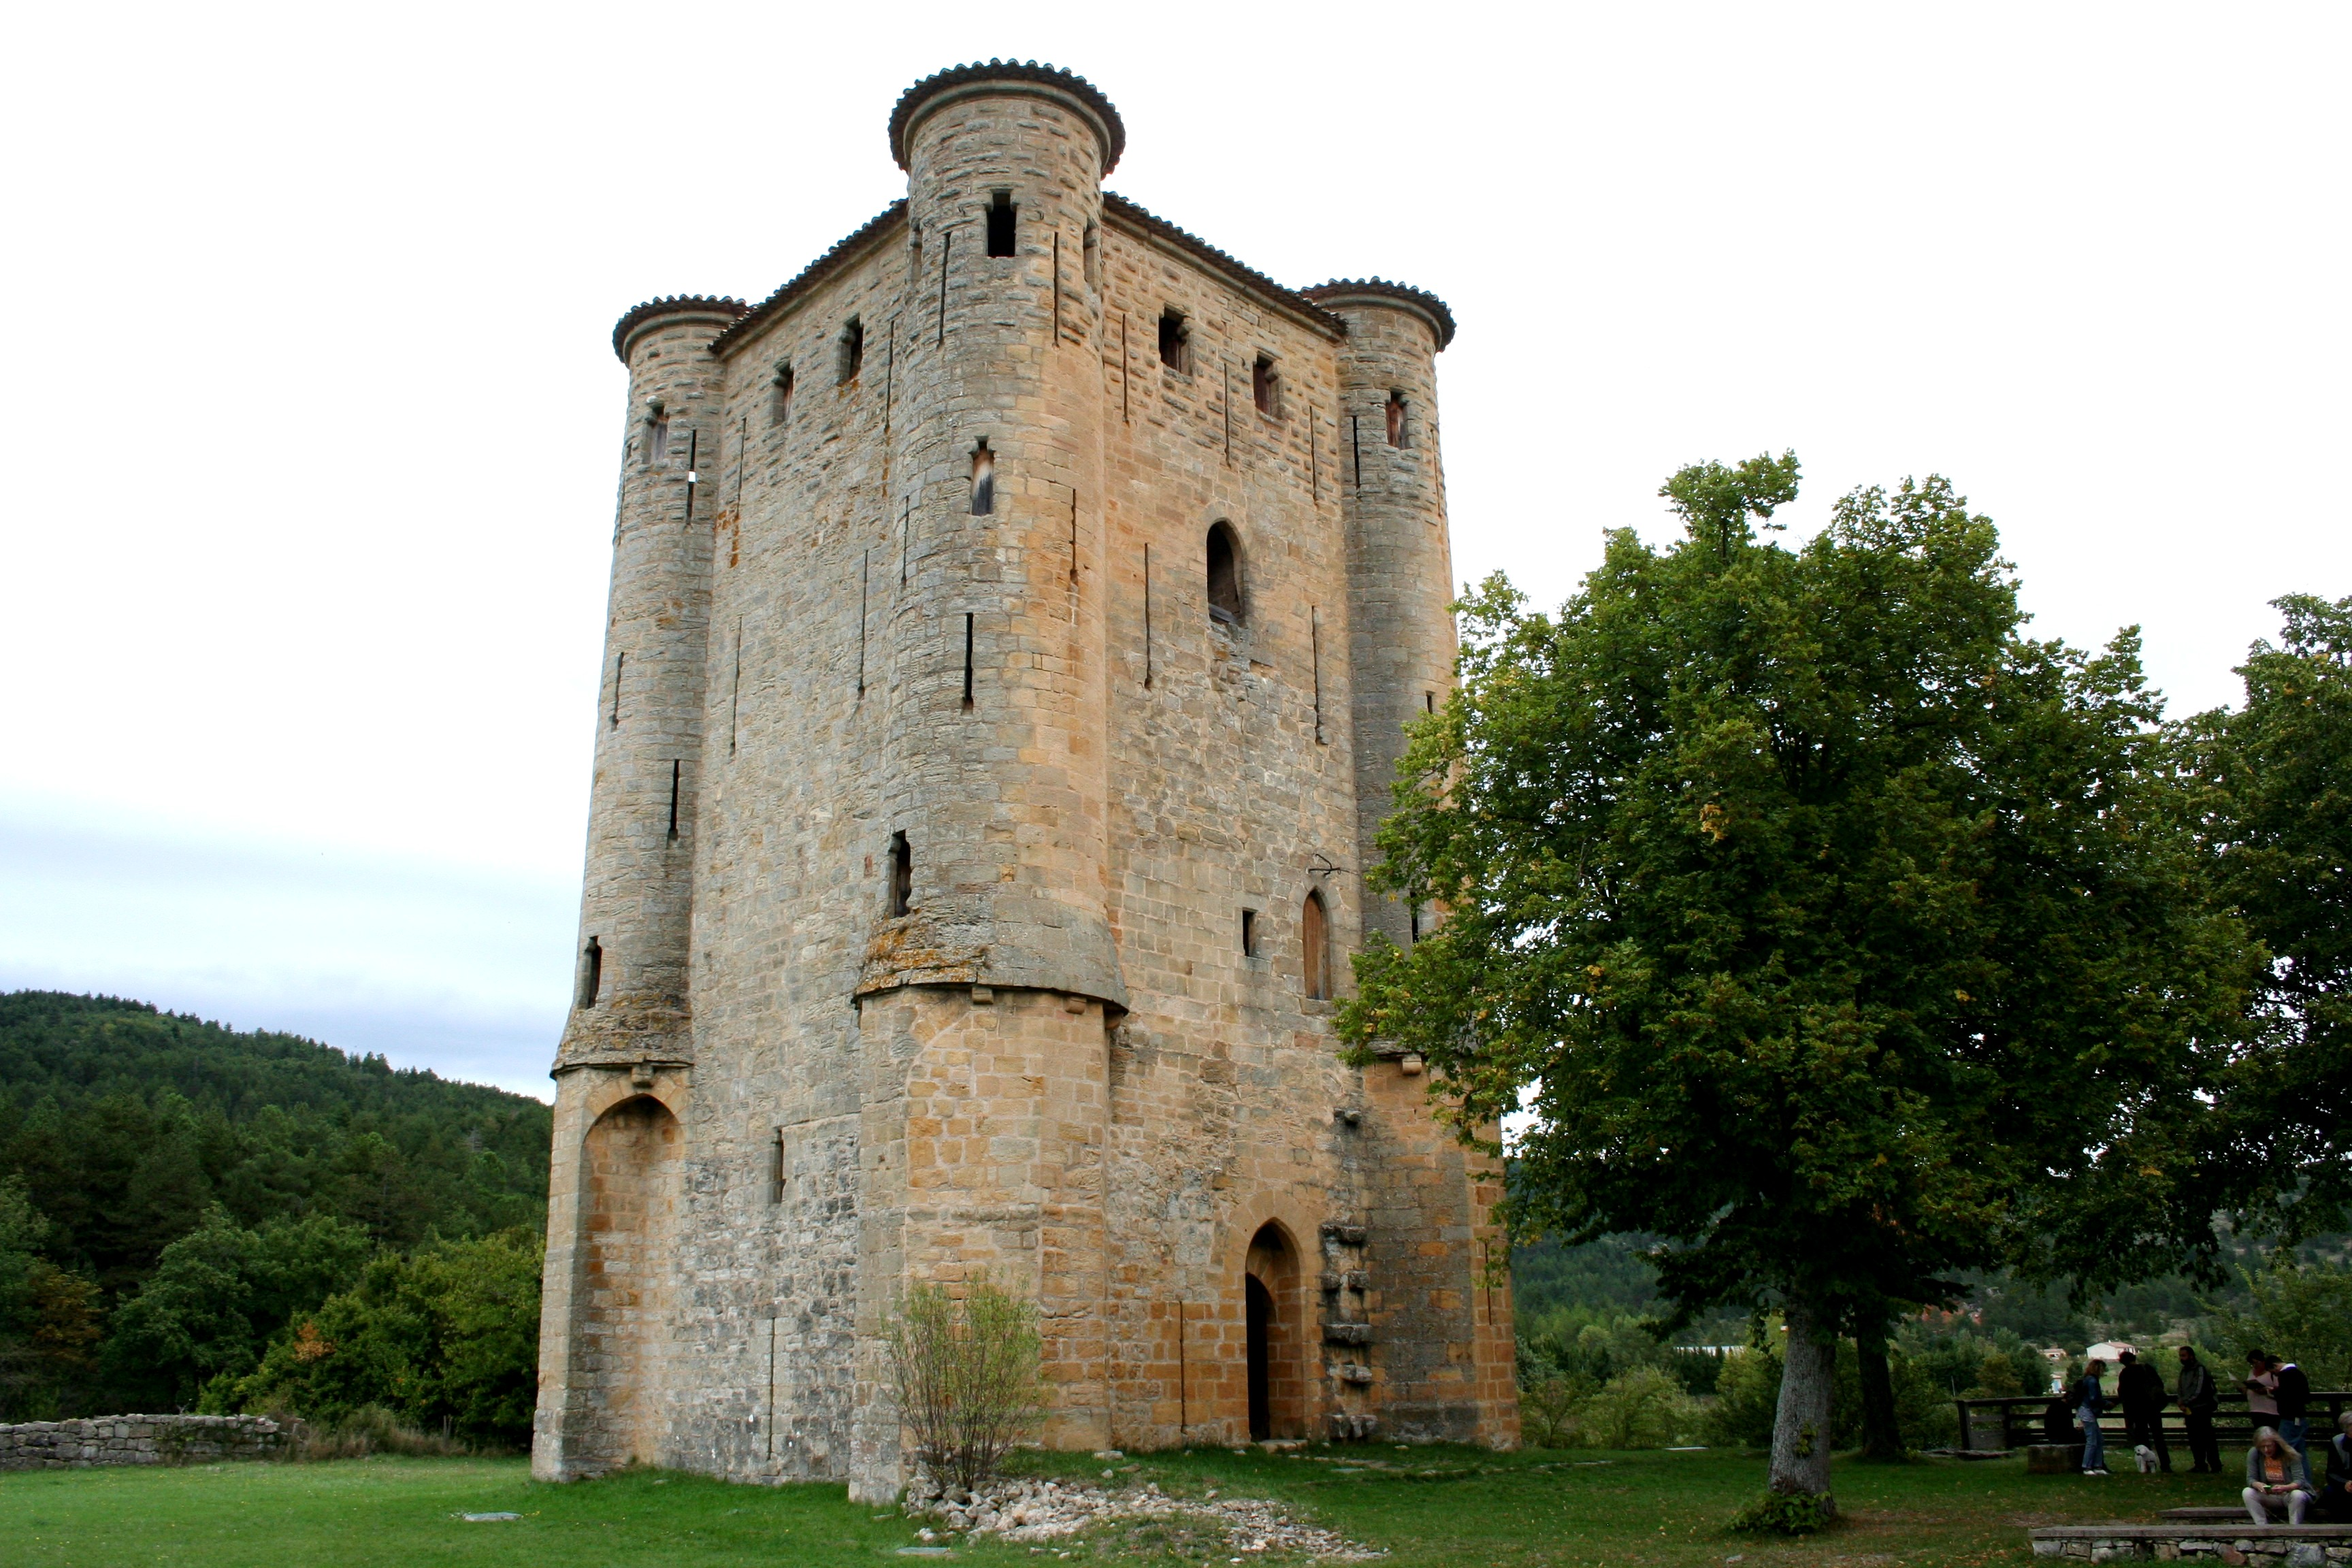 Chateau d'Arques Tower